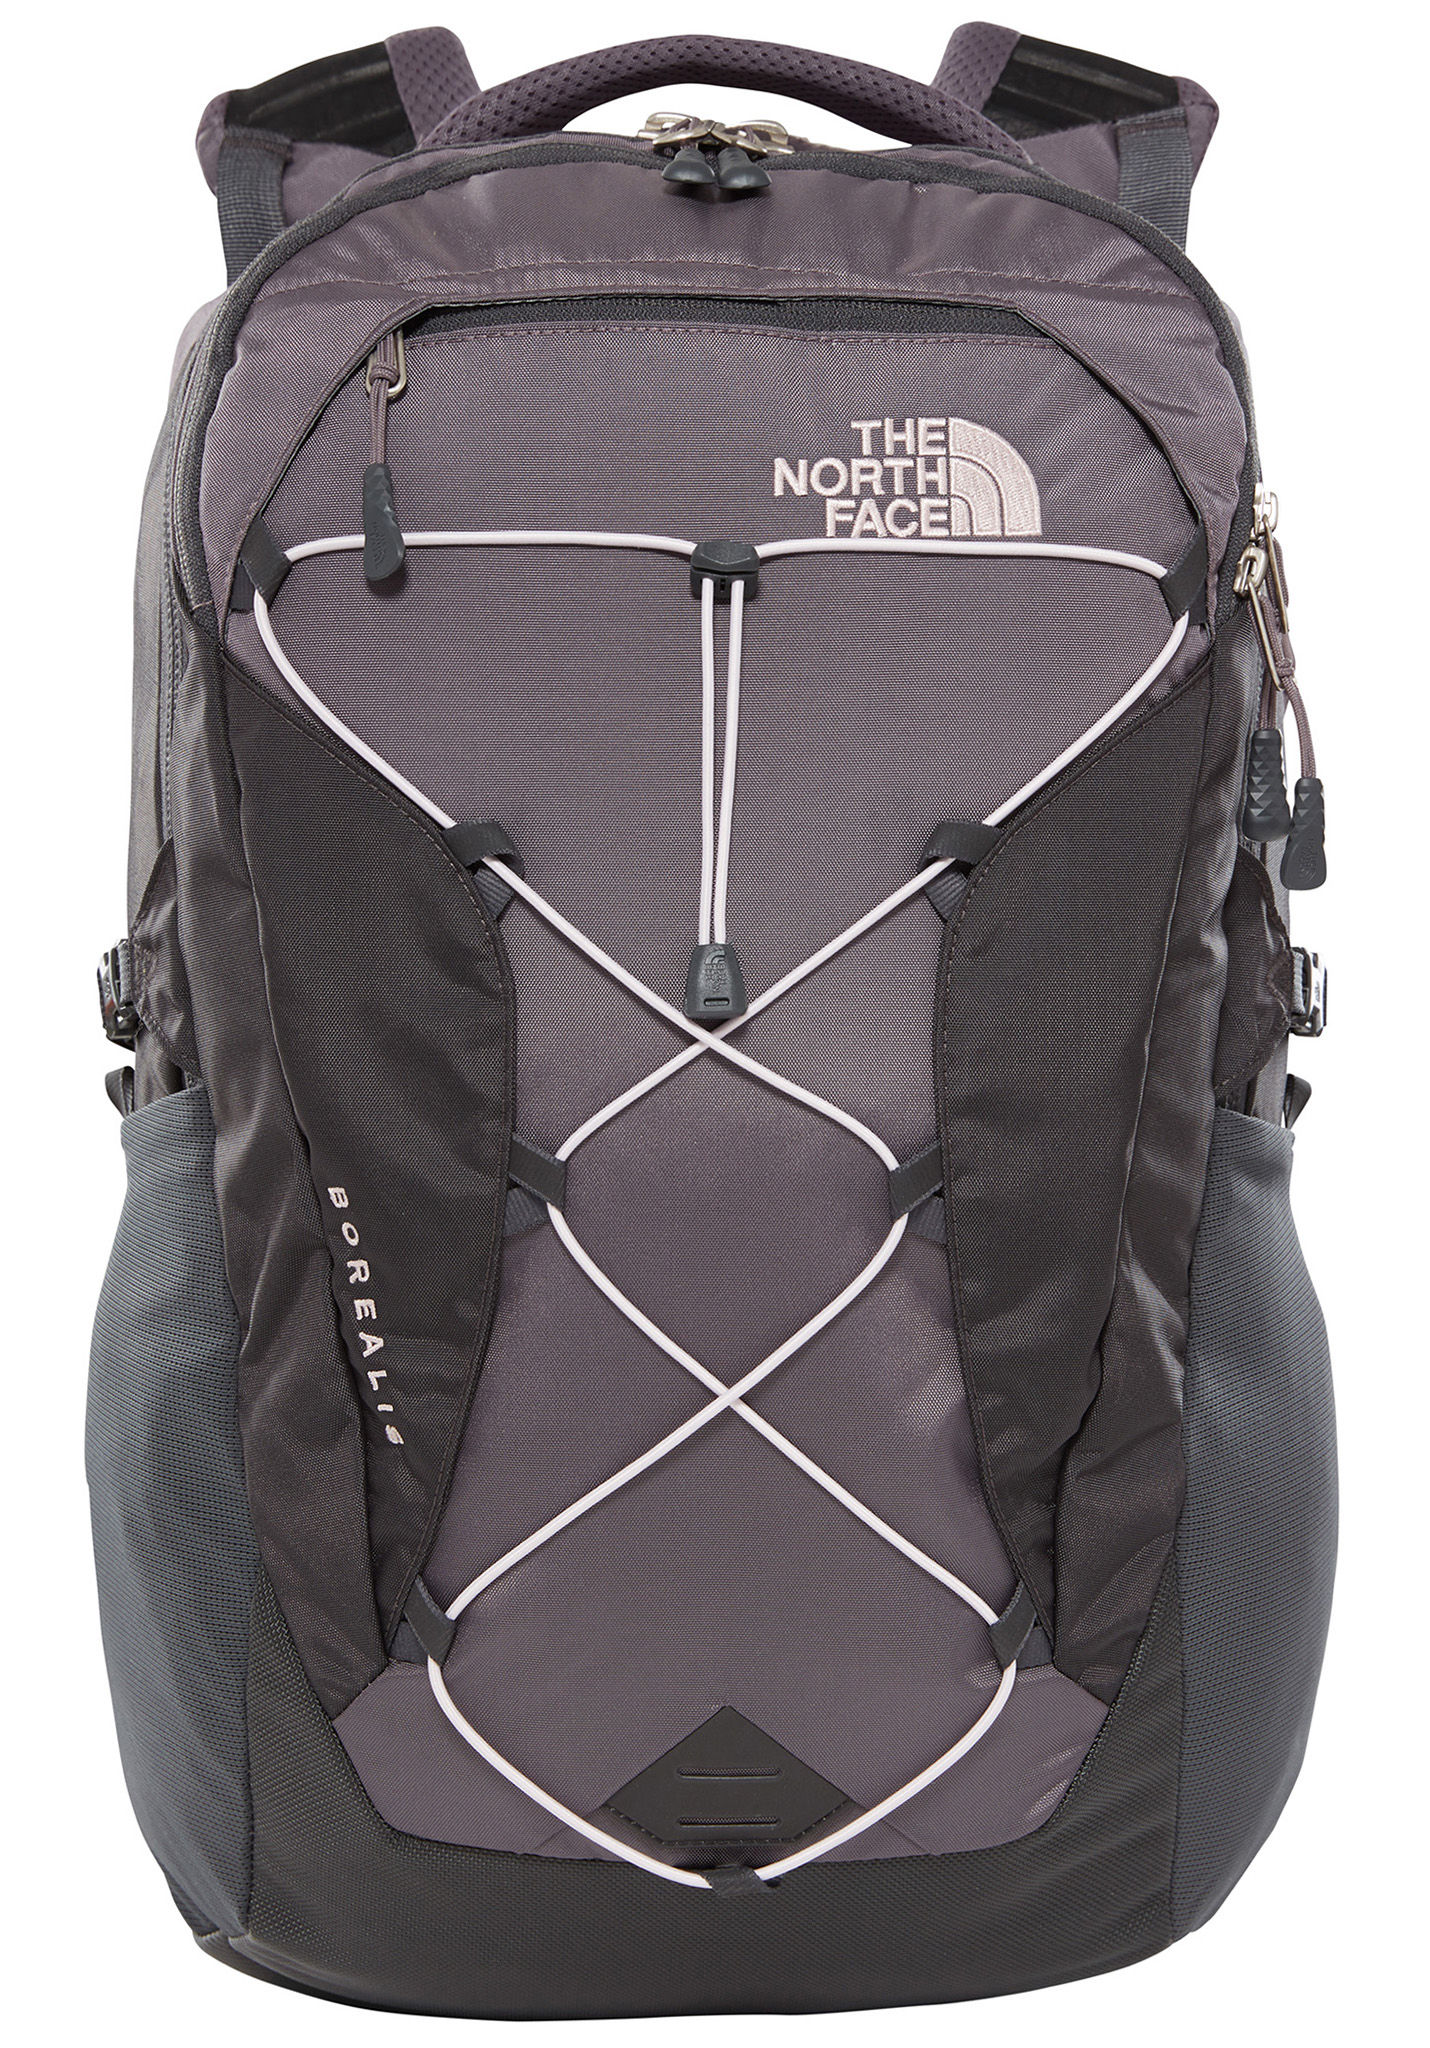 3d6f01c13ada4f THE NORTH FACE Borealis 28L - Backpack for Women - Grey - Planet Sports